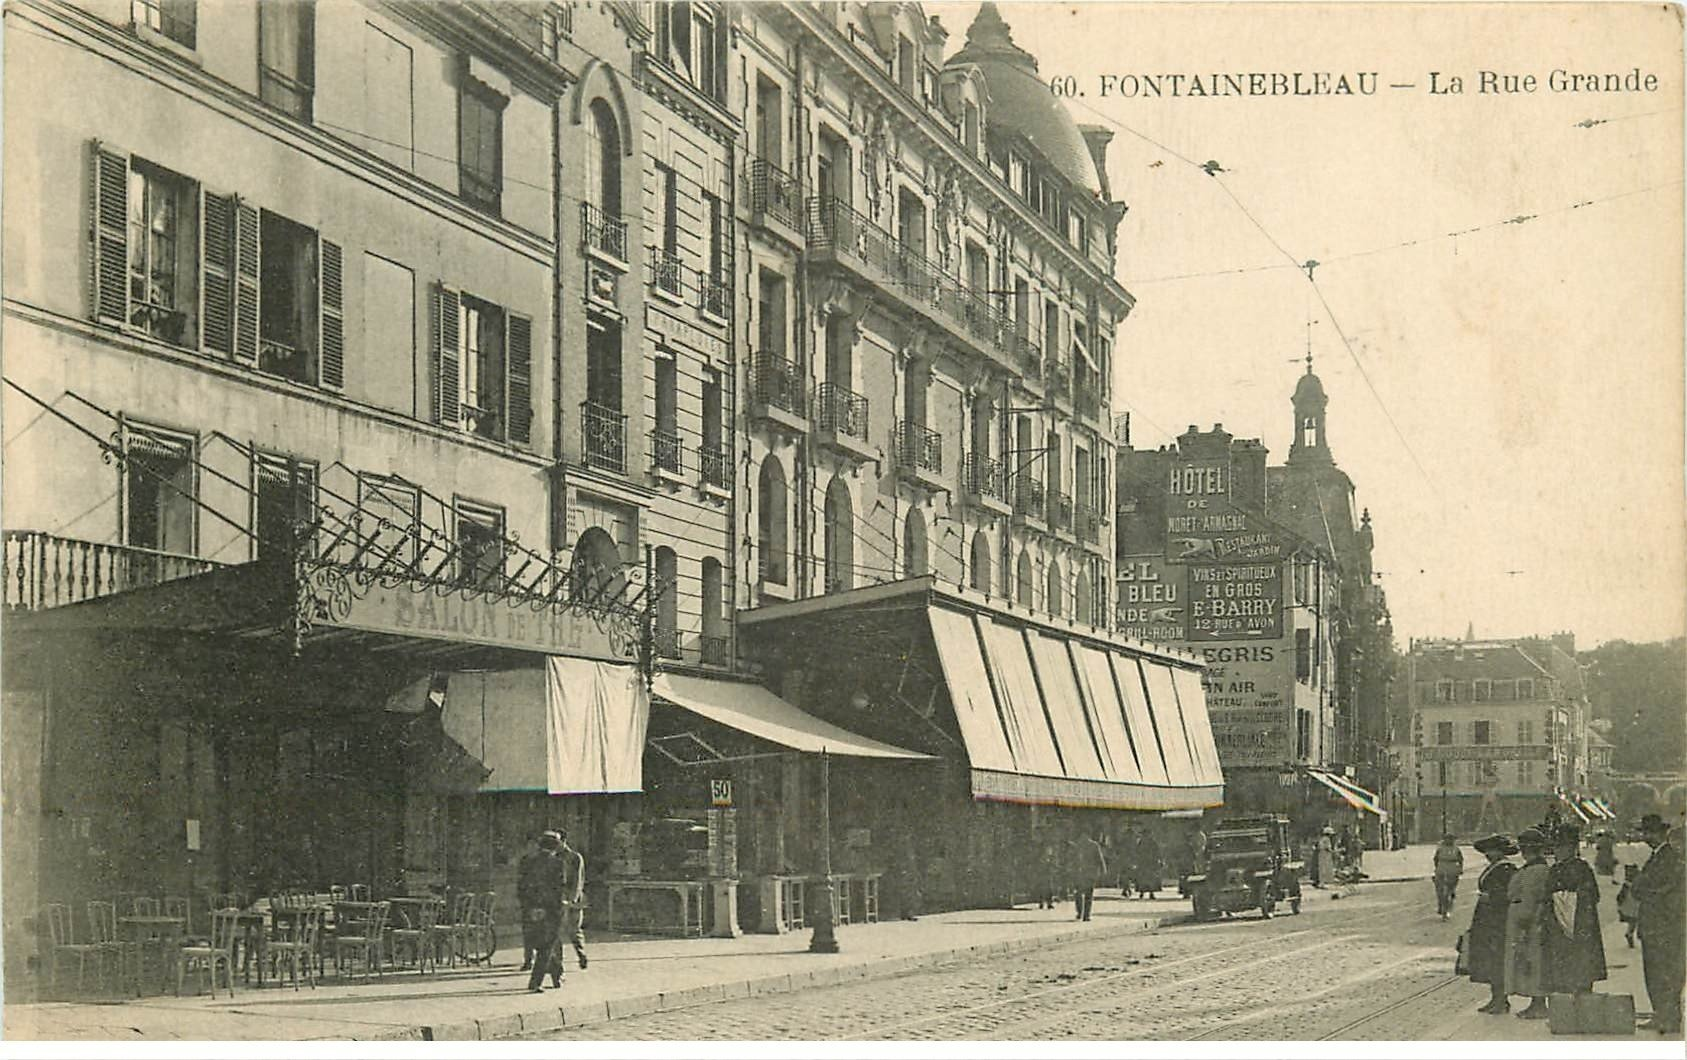 77 fontainebleau grande rue salon de th for Salon carte postale